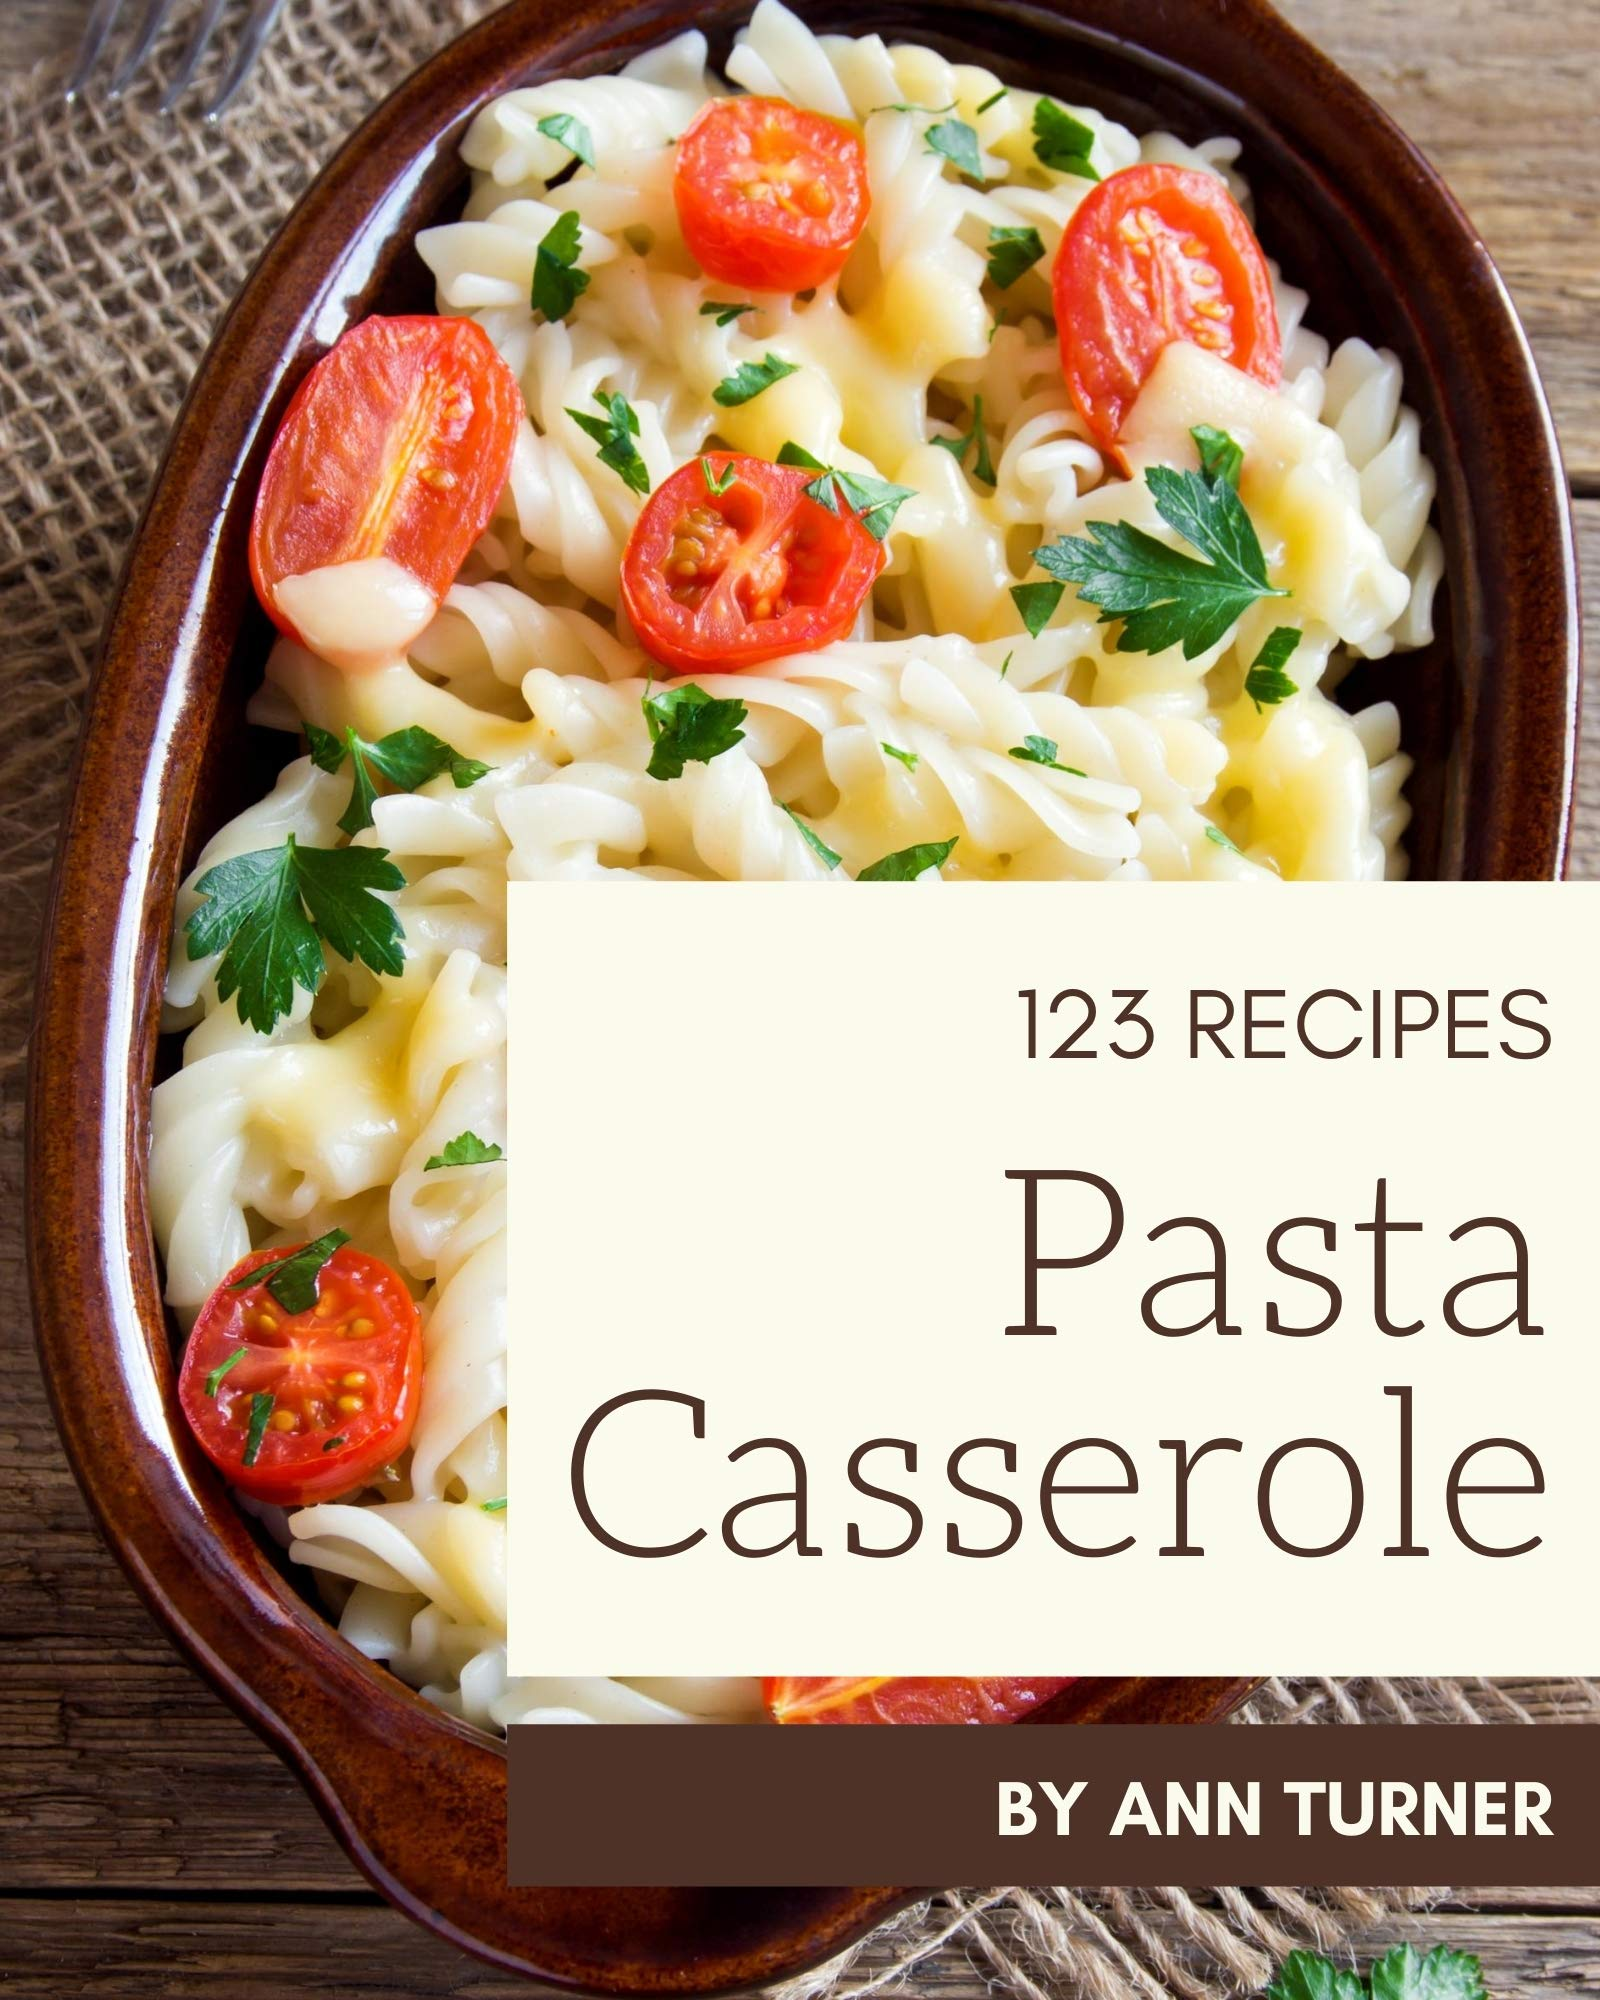 123 Pasta Casserole Recipes: Pasta Casserole Cookbook - The Magic to Create Incredible Flavor!